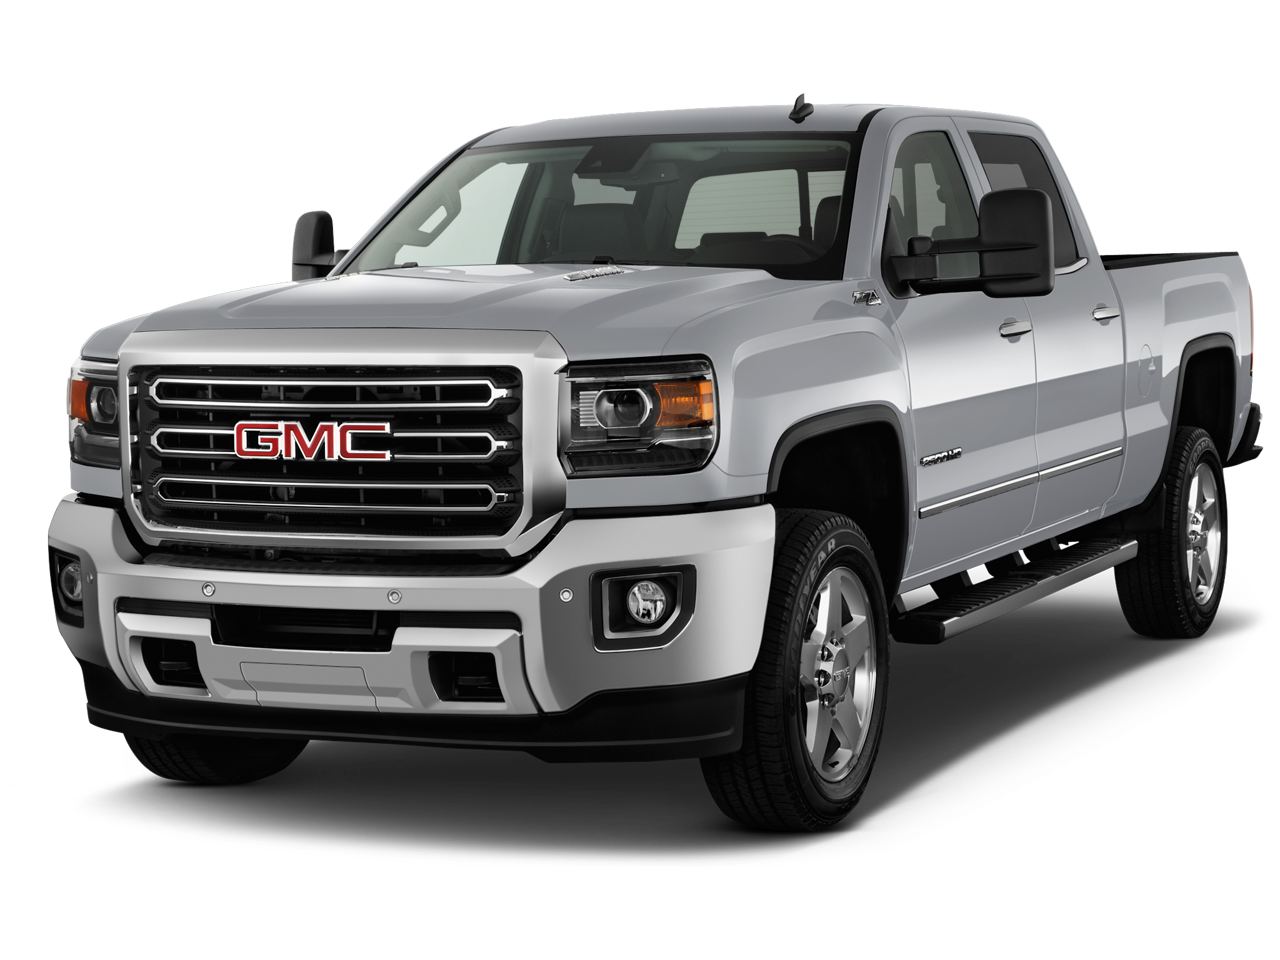 new 2017 gmc sierra 2500hd slt near round rock tx nyle maxwell family of dealerships. Black Bedroom Furniture Sets. Home Design Ideas